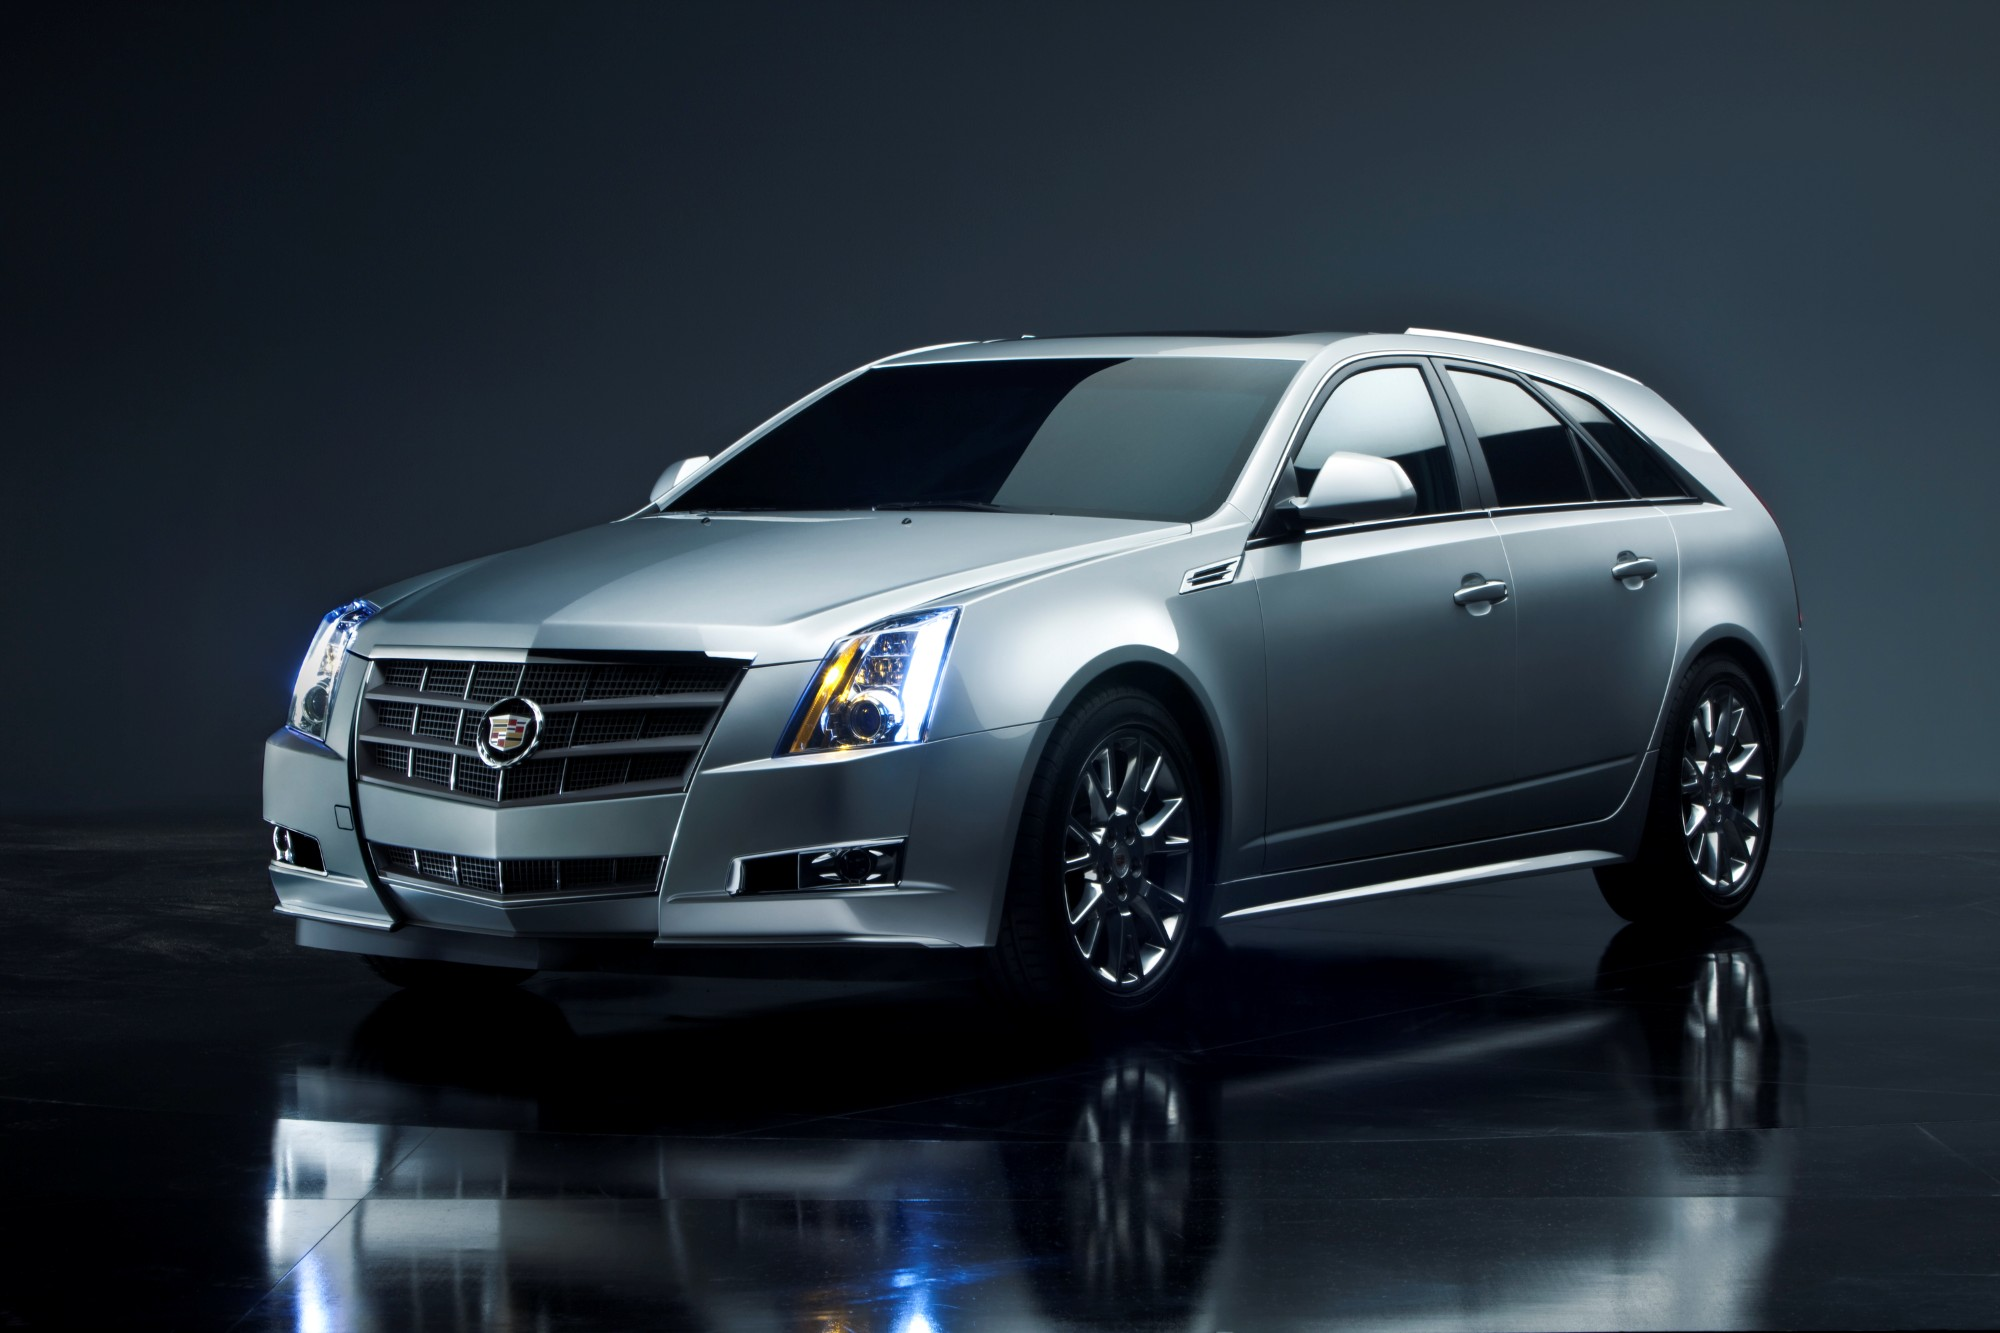 2013 Cadillac Cts Review Ratings Specs Prices And Photos The Car Connection